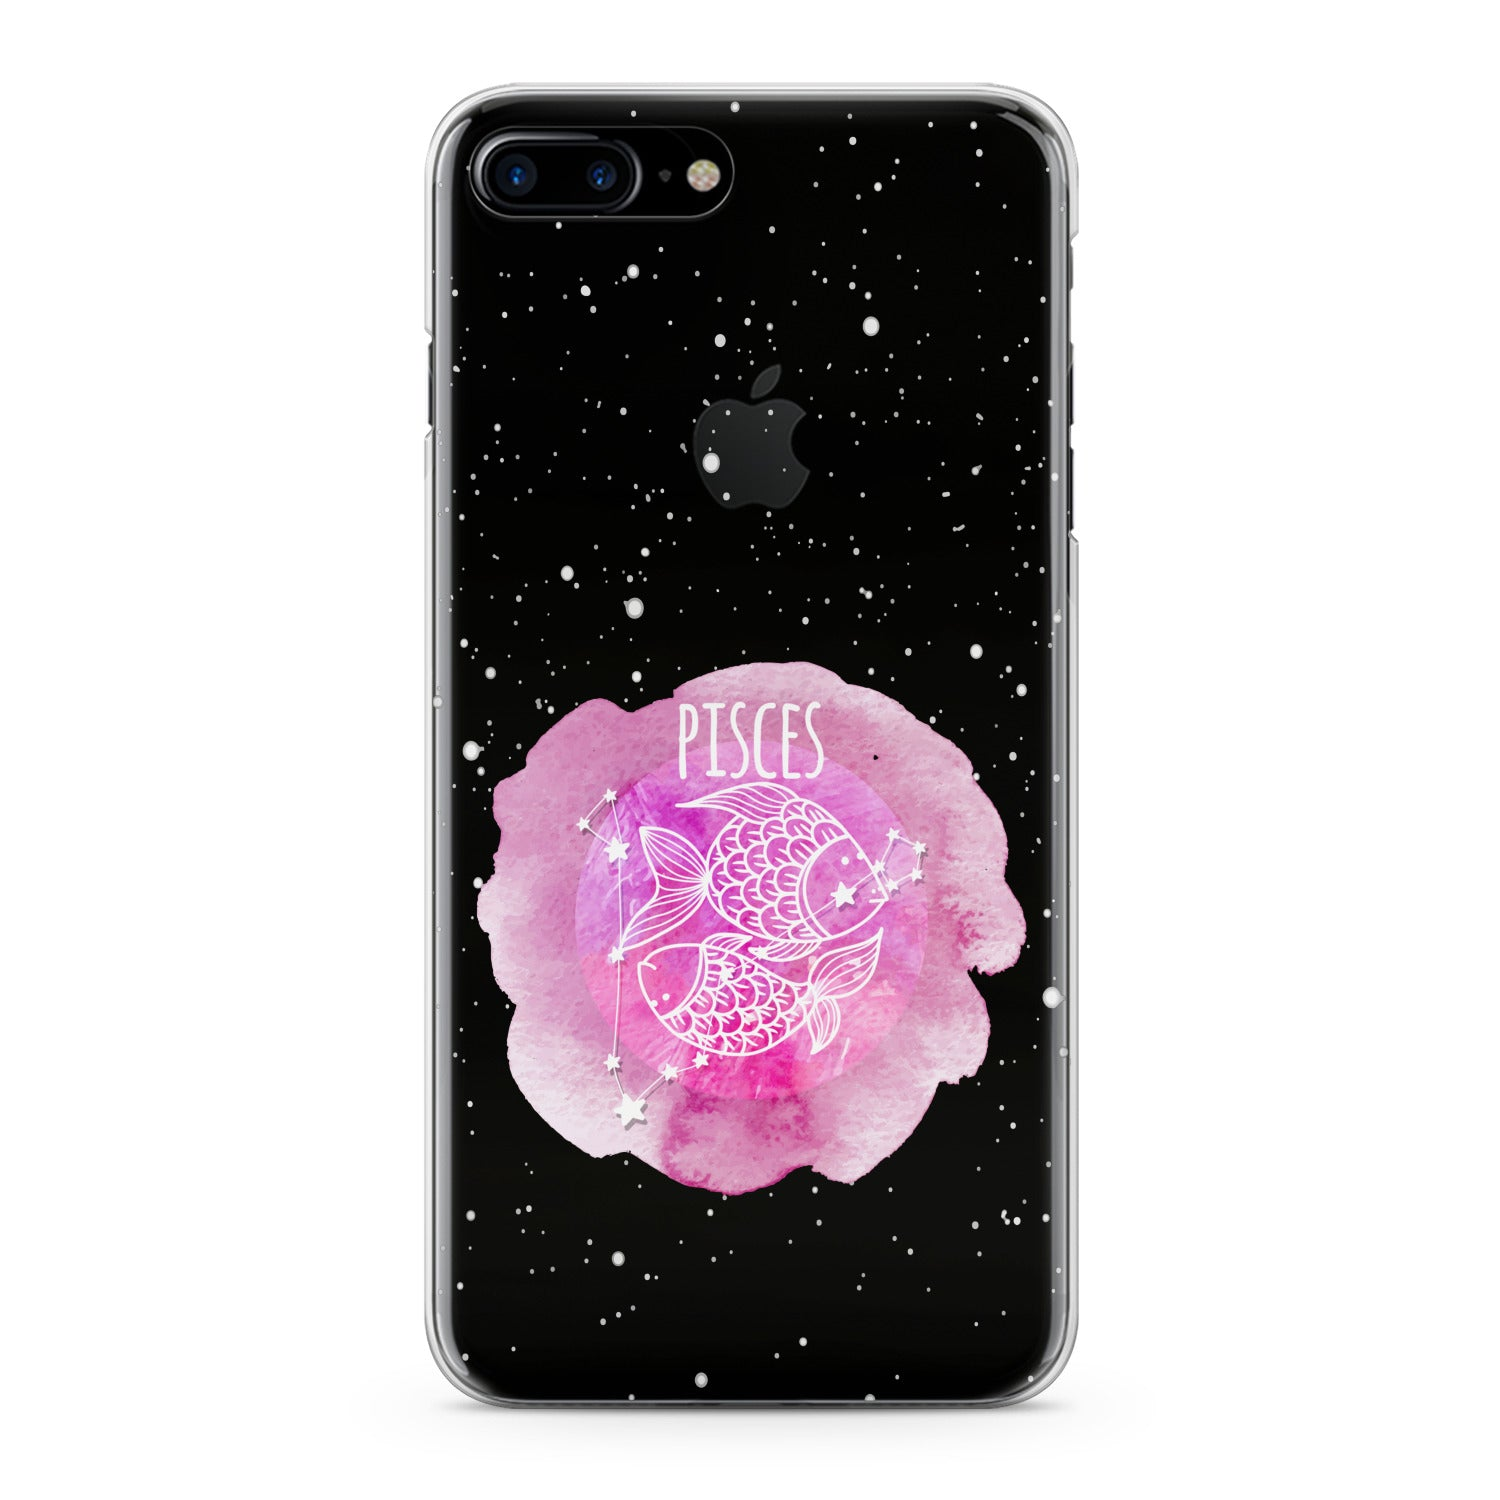 Lex Altern Pisces Zodiac Phone Case for your iPhone & Android phone.